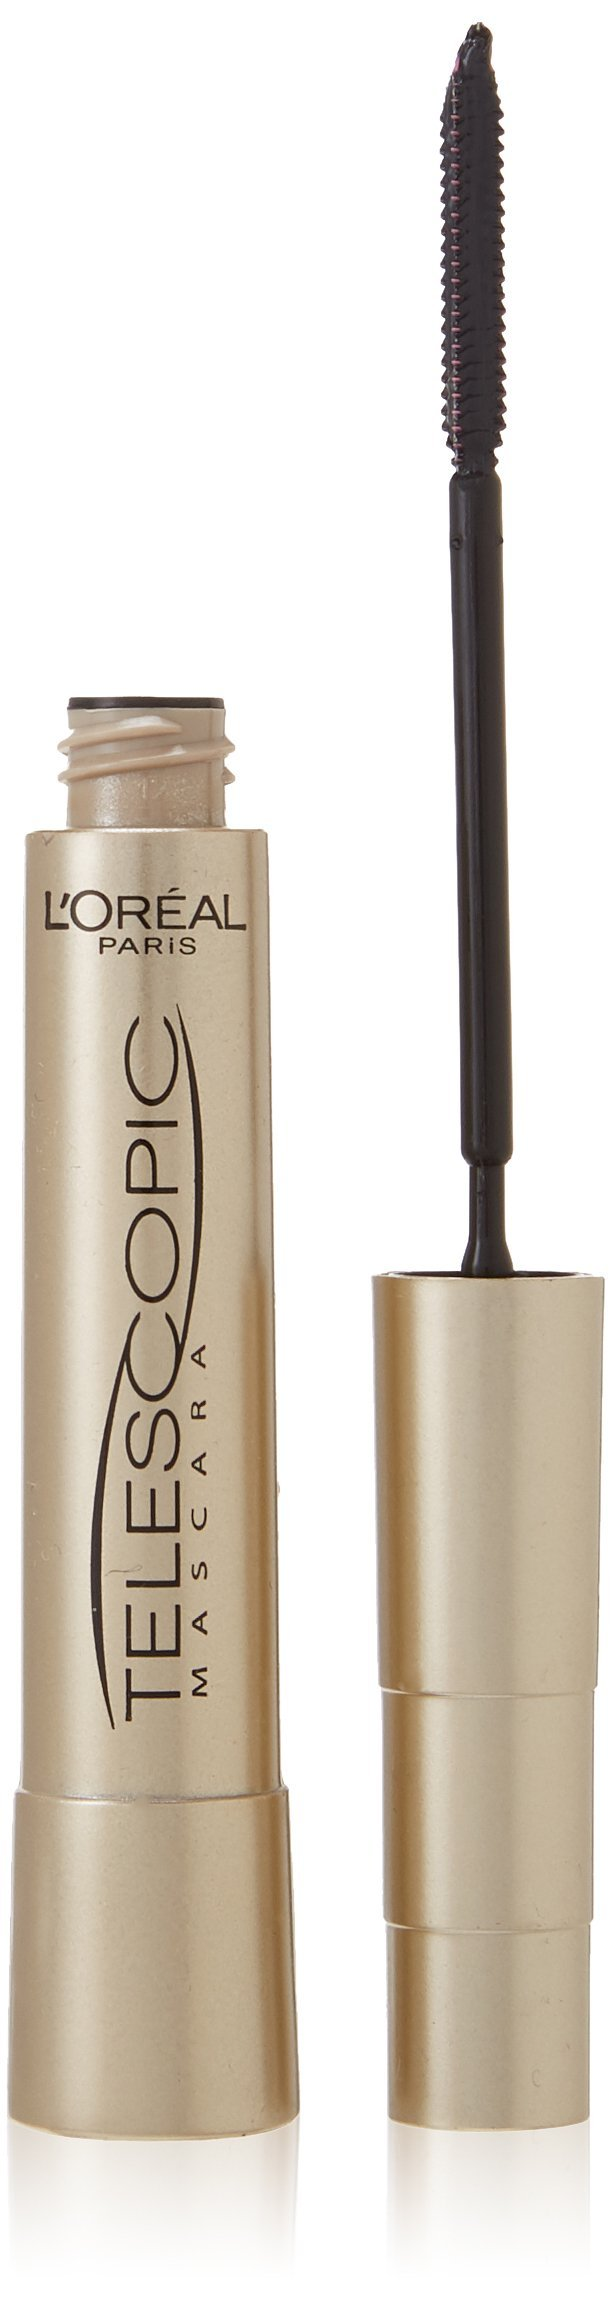 L'Oreal Paris Telescopic Mascara, Black [905] 0.27 oz (Pack of 2)